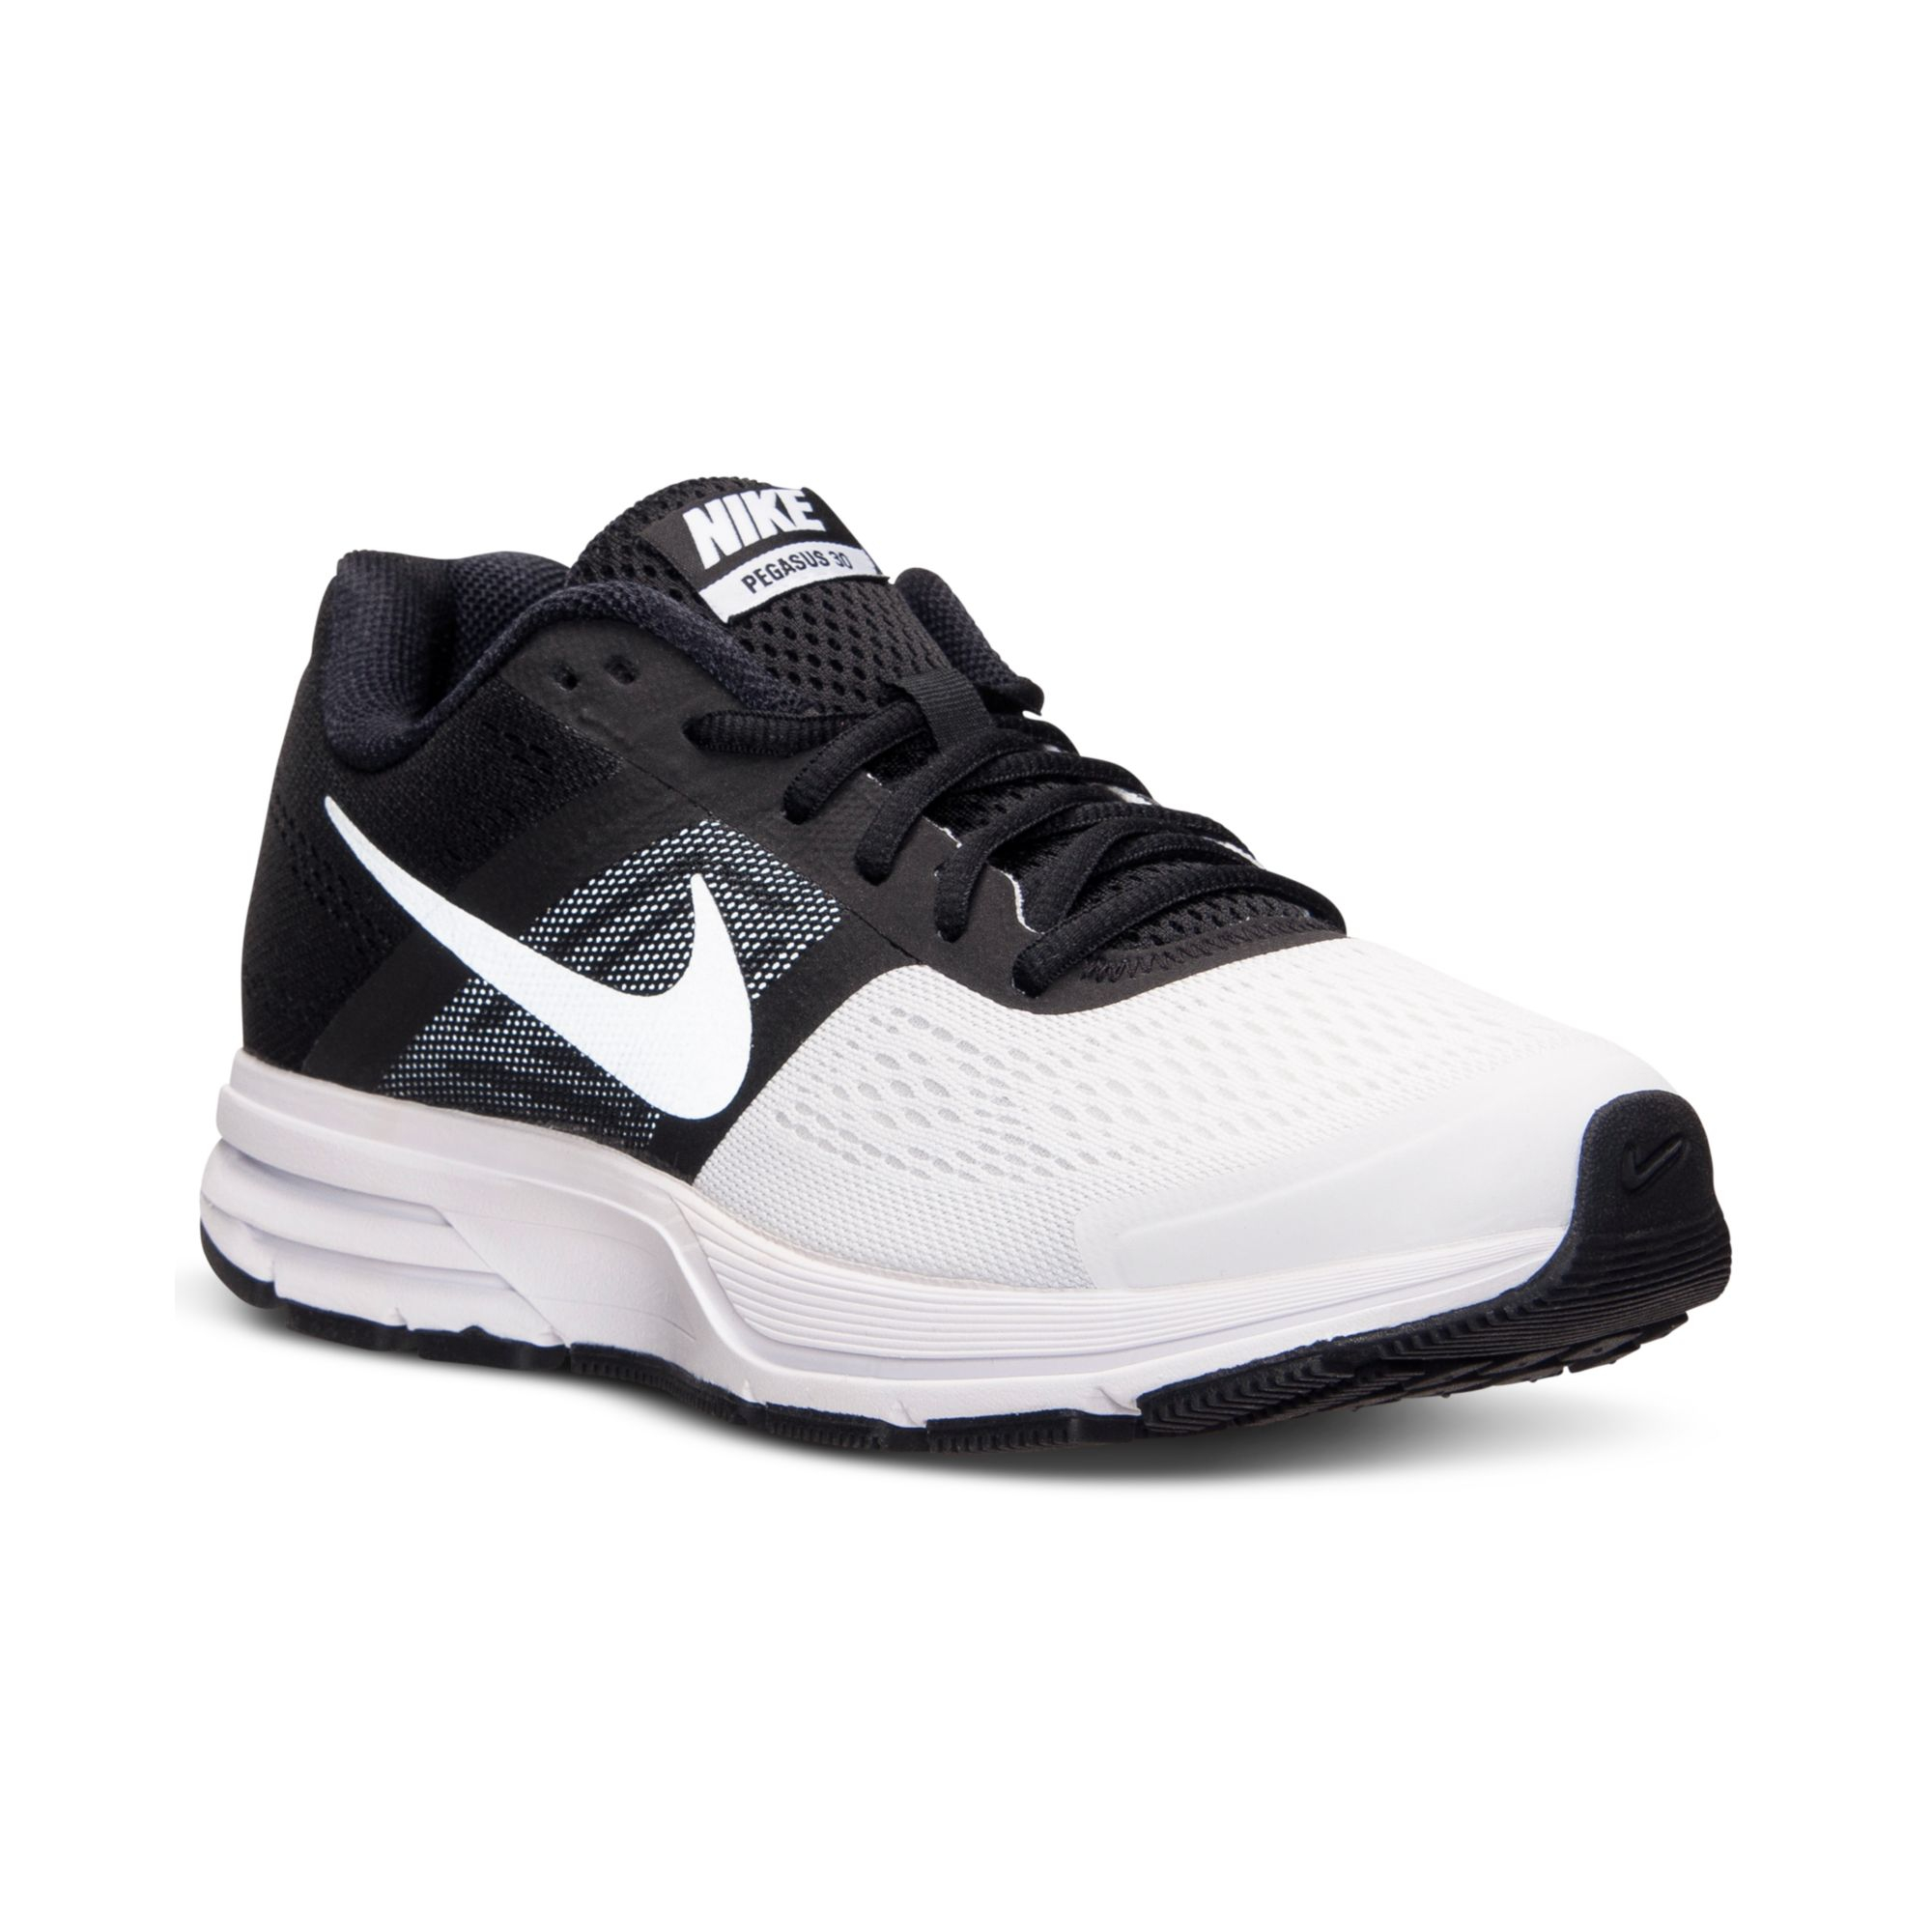 c5d6fe70fe3e Lyst - Nike Mens Air Pegasus 30 Running Sneakers From Finish Line in ...